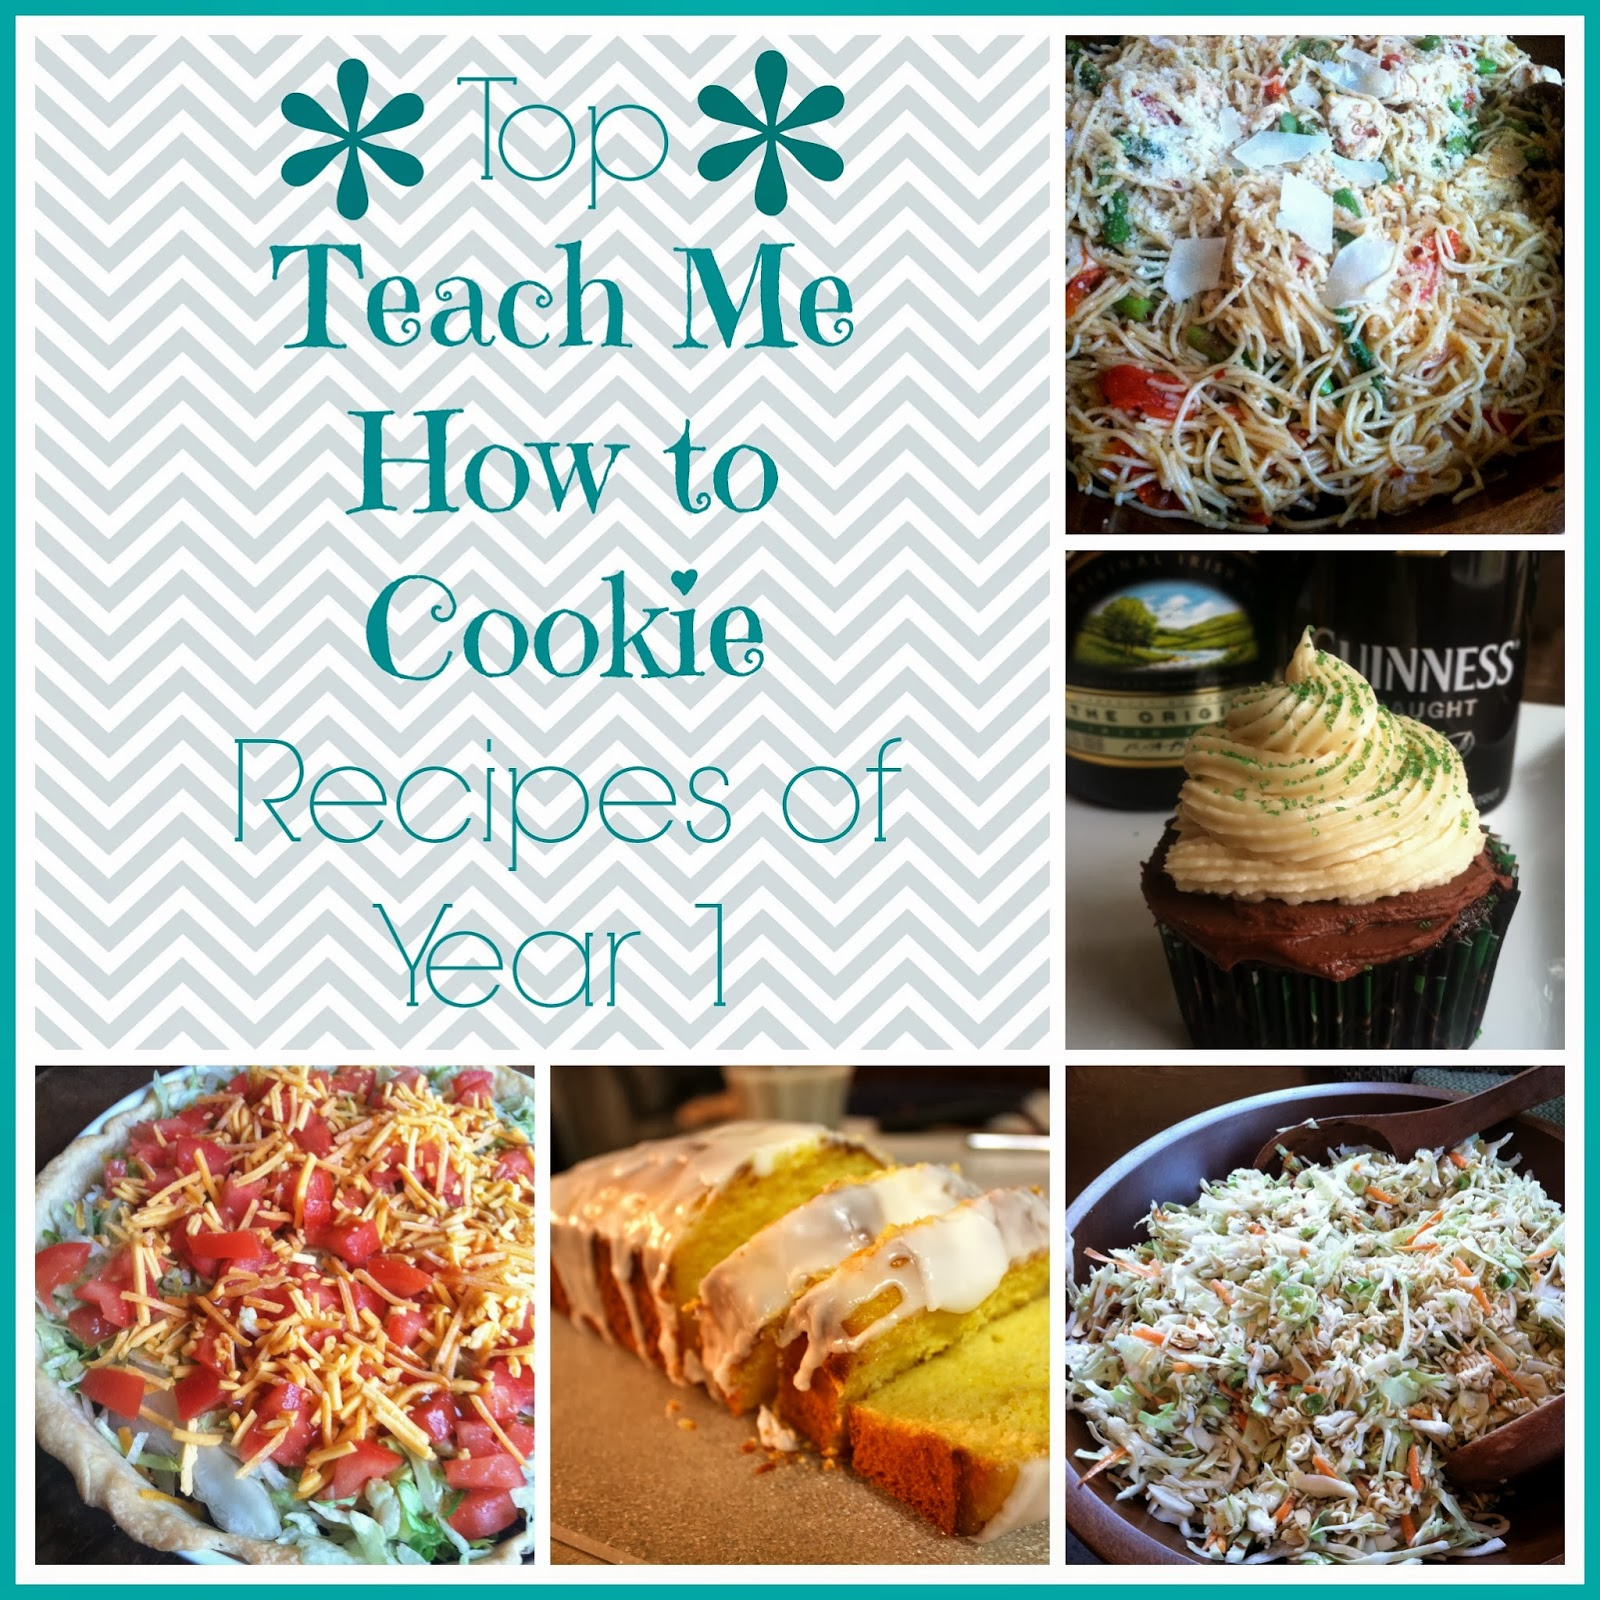 Teach Me How to Cookie Top Recipes of Year 1